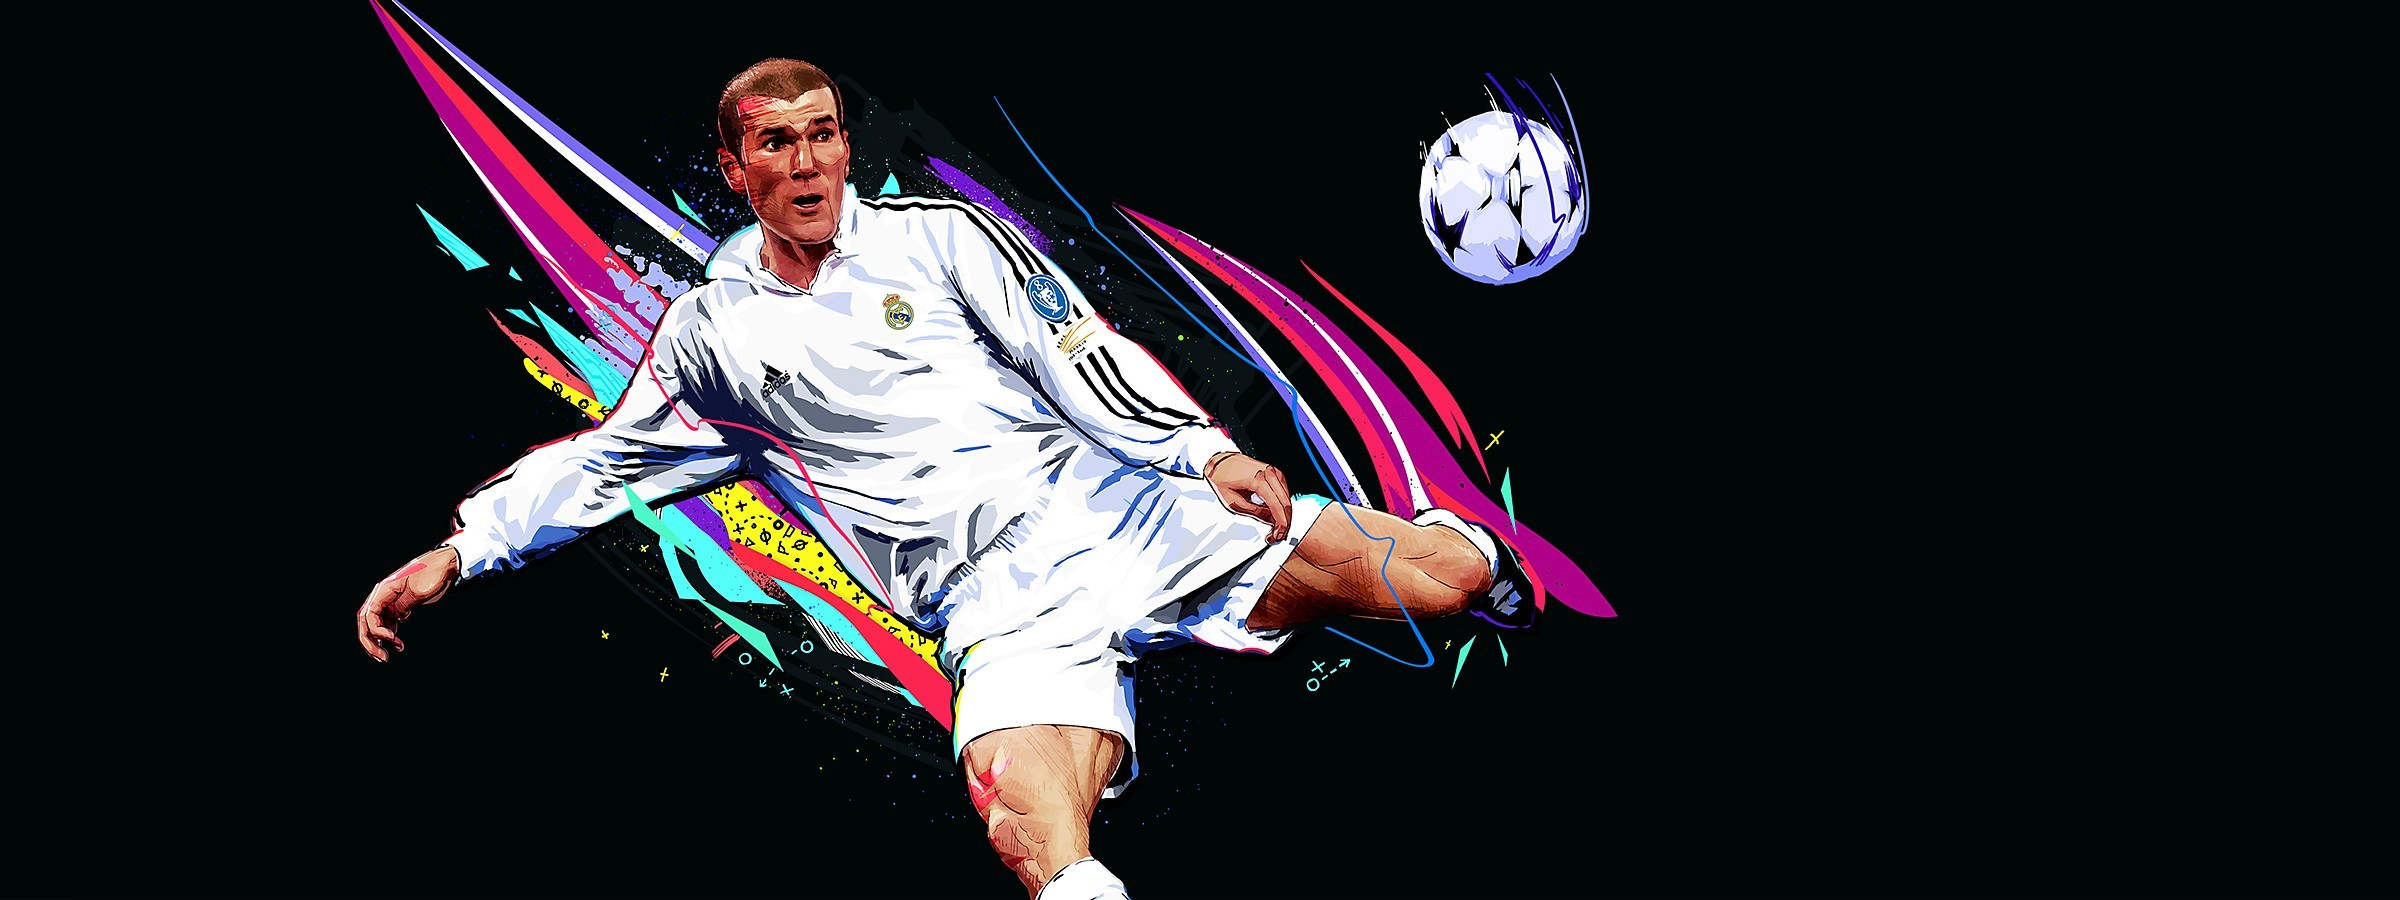 Zidane 2020 Wallpaper Kolpaper Awesome Free Hd Wallpapers